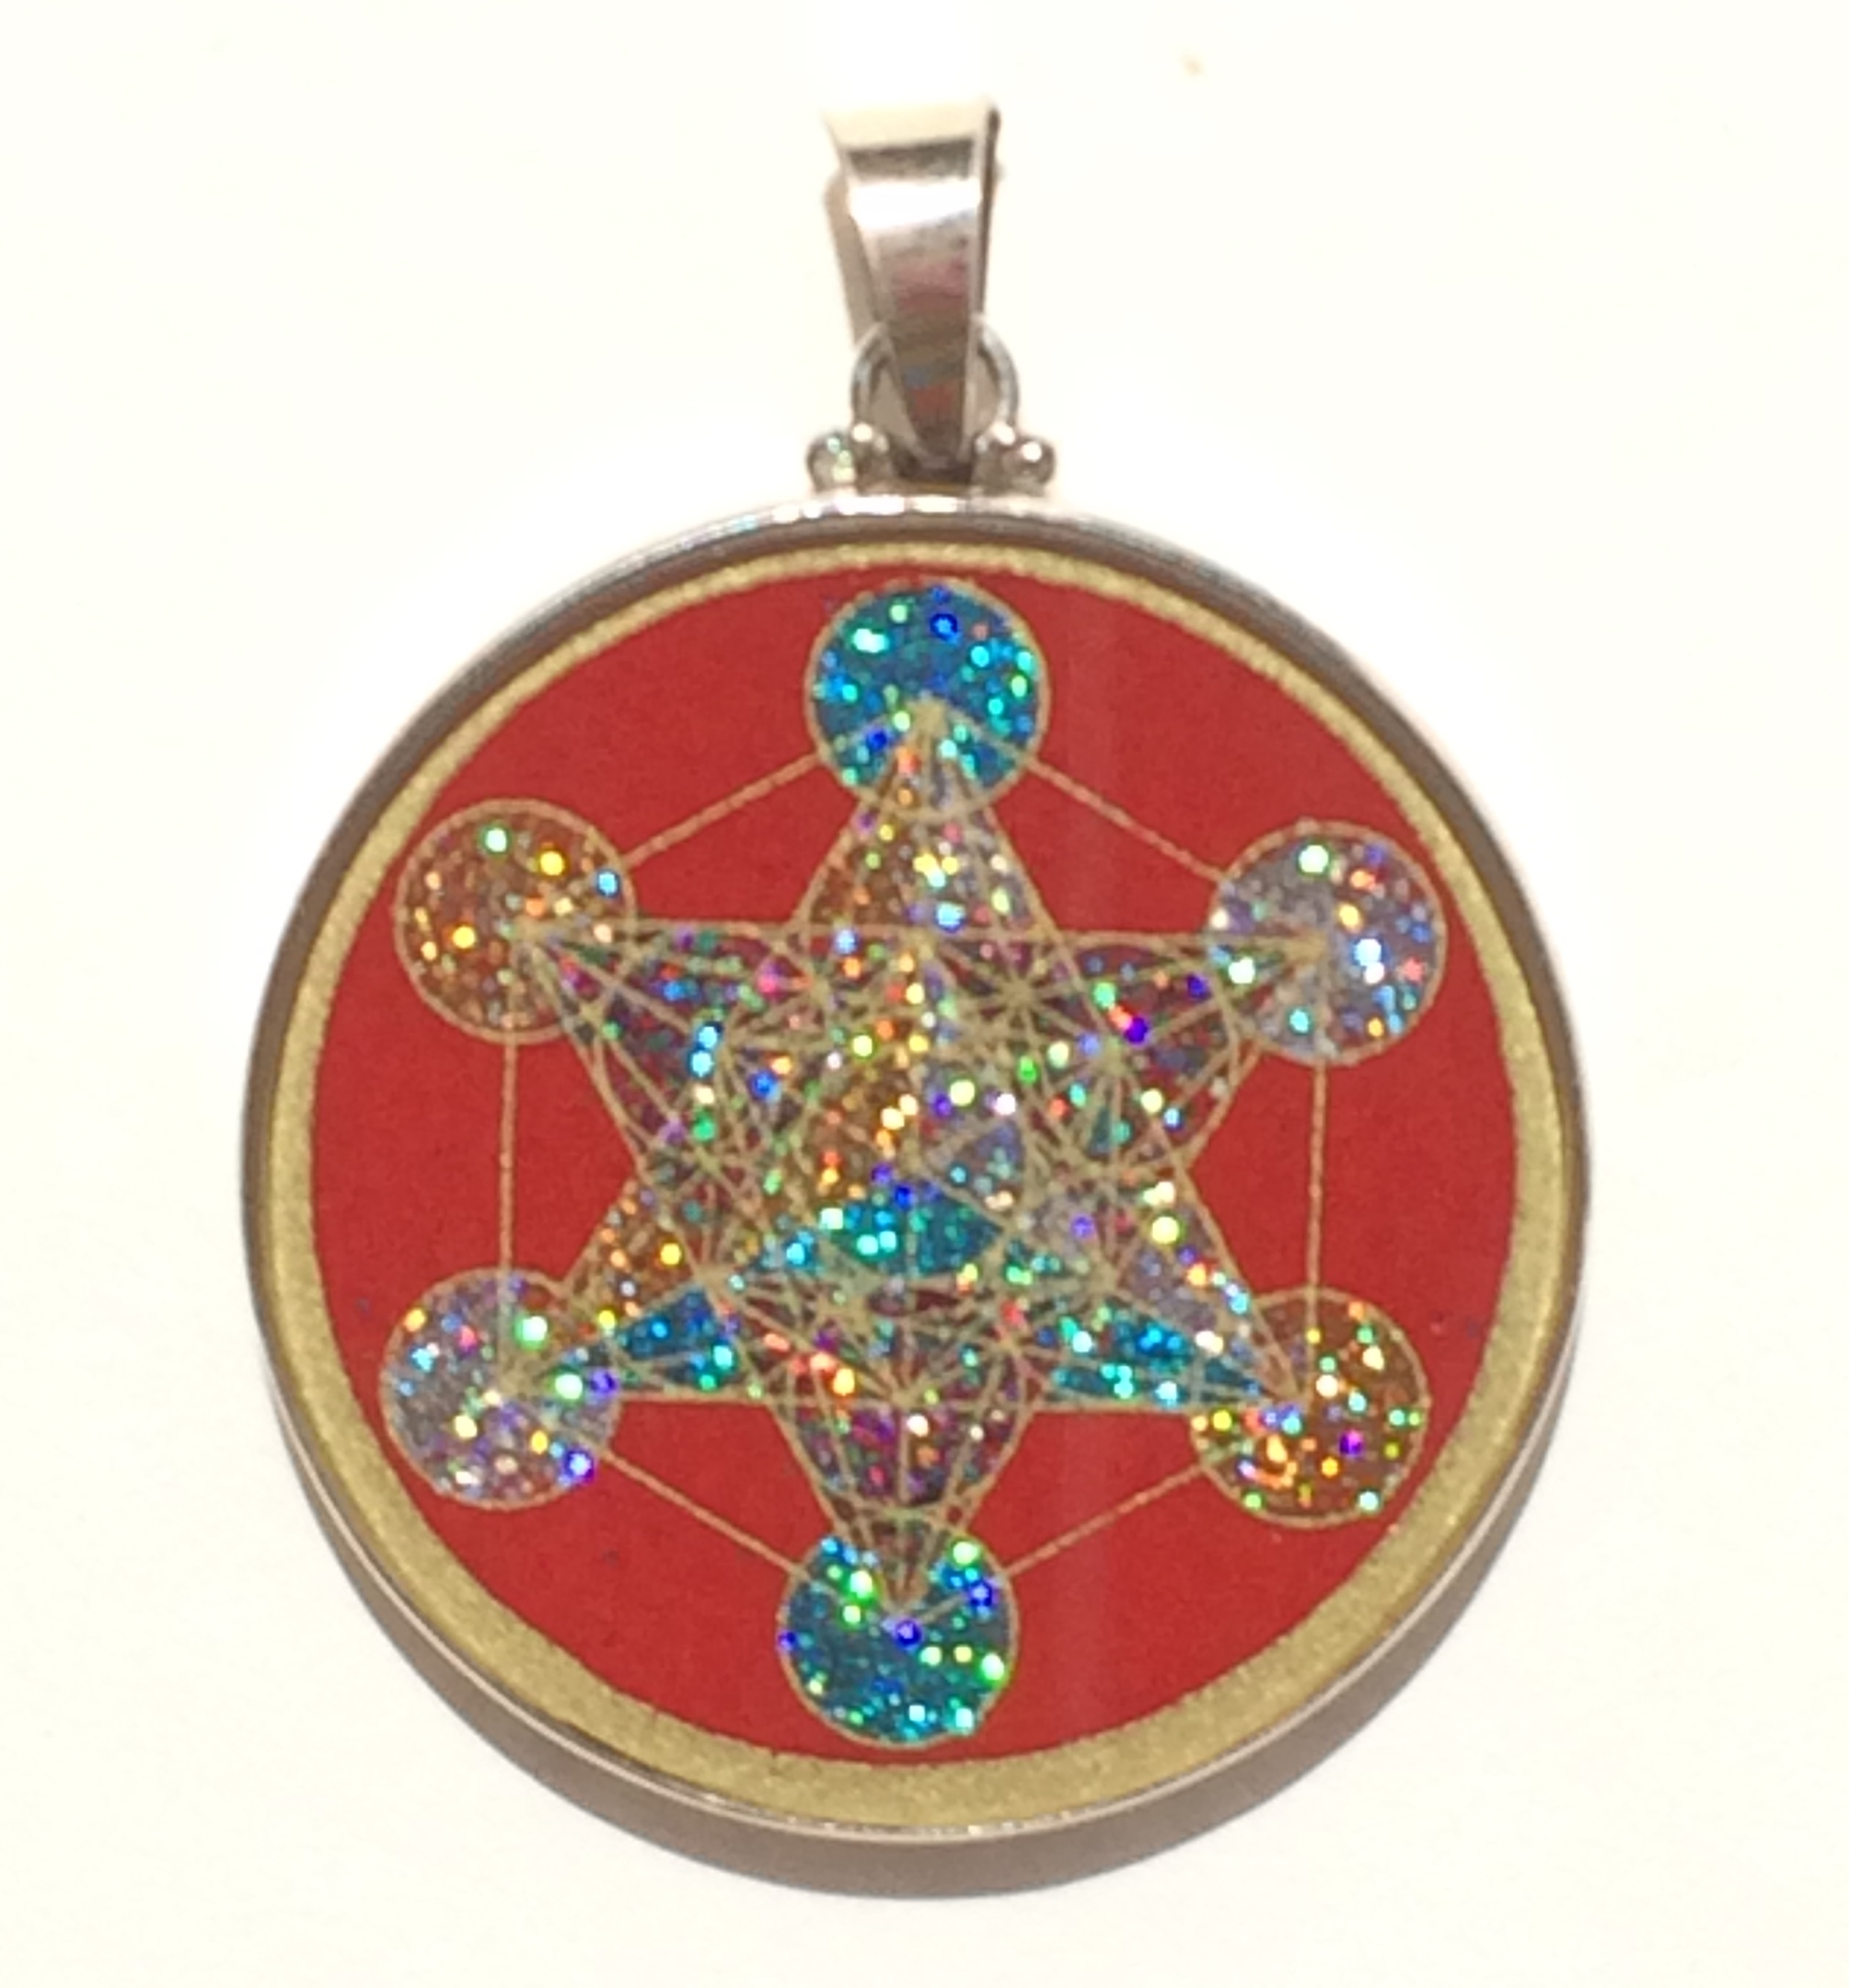 Metatrons cube sacred geometry pendant red coral by scalar heart metatrons cube sacred geometry pendant red coral by scalar heart collection 712395267059 aloadofball Gallery